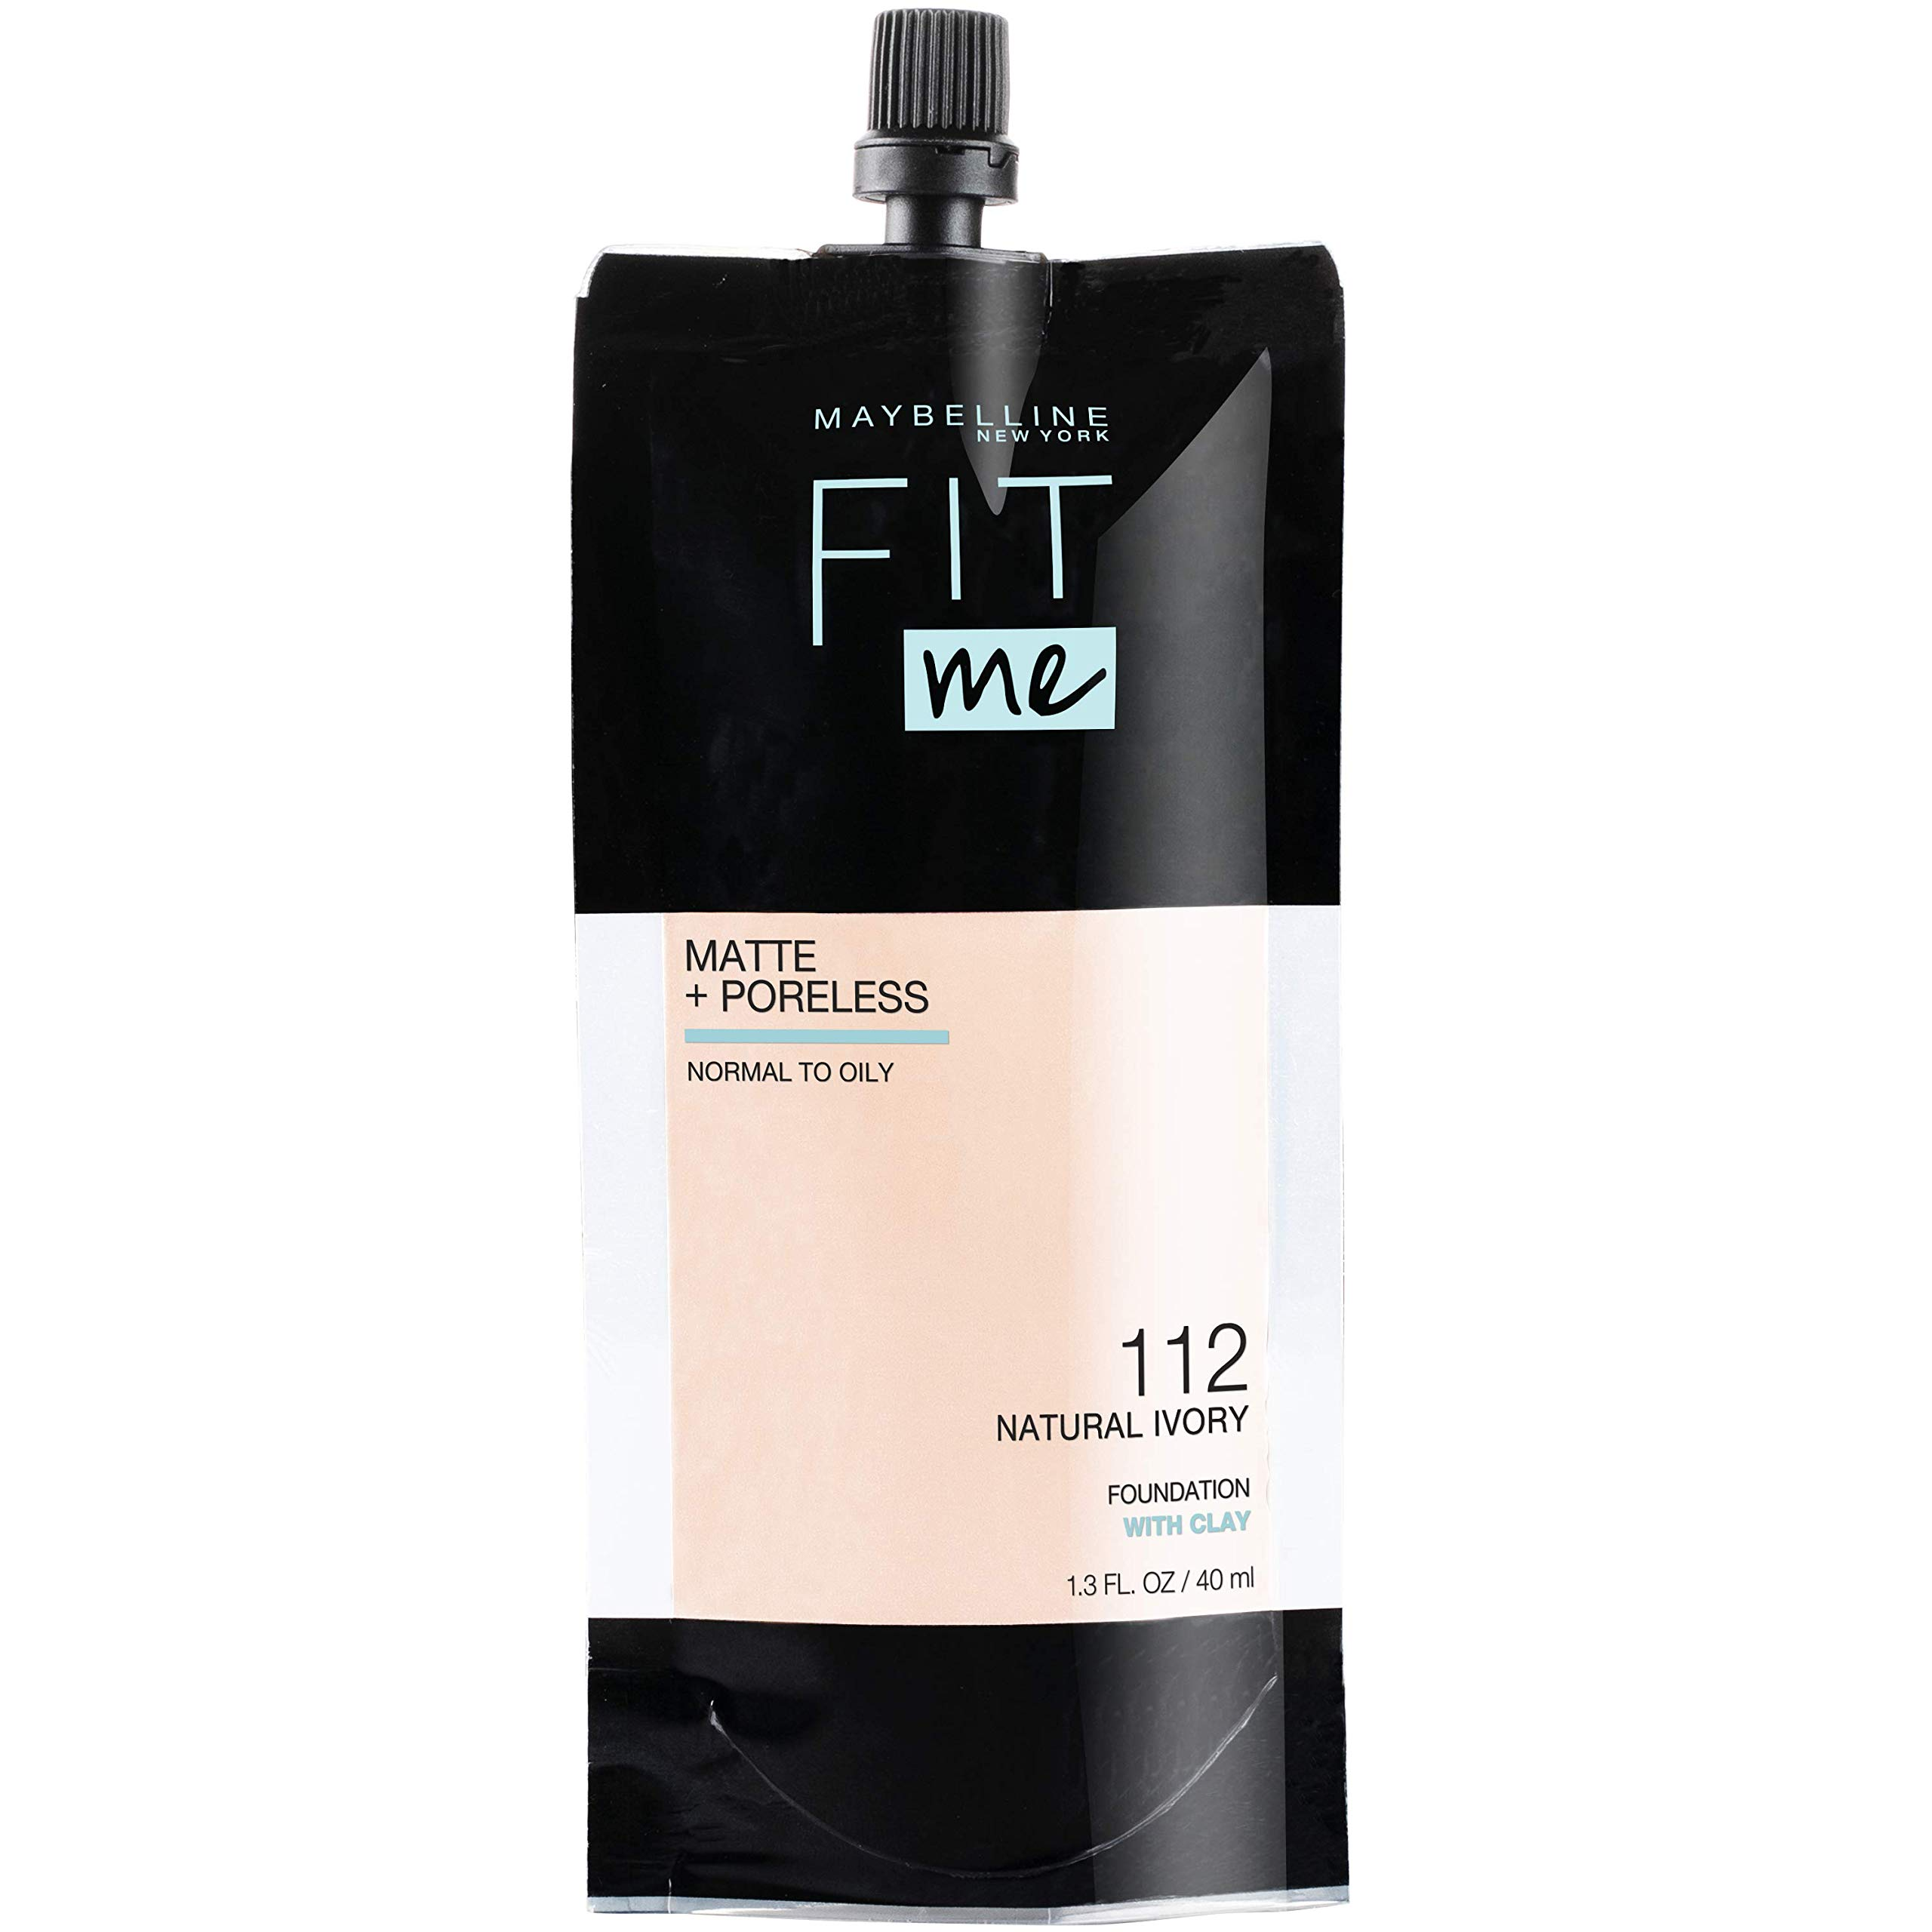 Maybelline Fit Me Matte + Poreless Liquid Foundation, Face Makeup, Mess-Free No Waste Pouch Format, Normal to Oily Skin Types, Natural Ivory, 1.3 Fl Oz